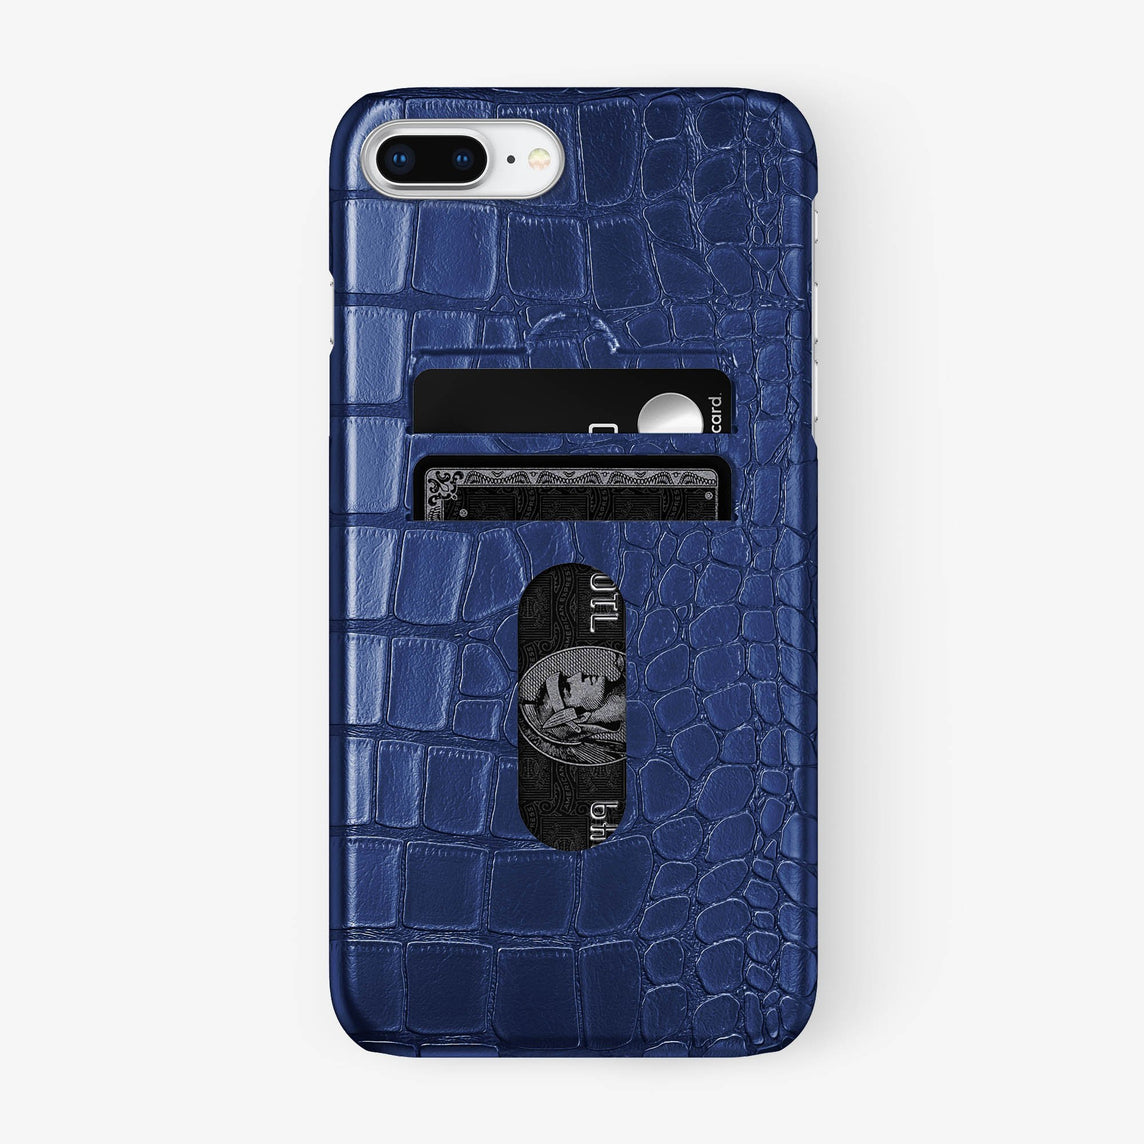 Alligator Card Holder Case iPhone 7/8 Plus | Navy Blue - Stainless Steel - Hadoro